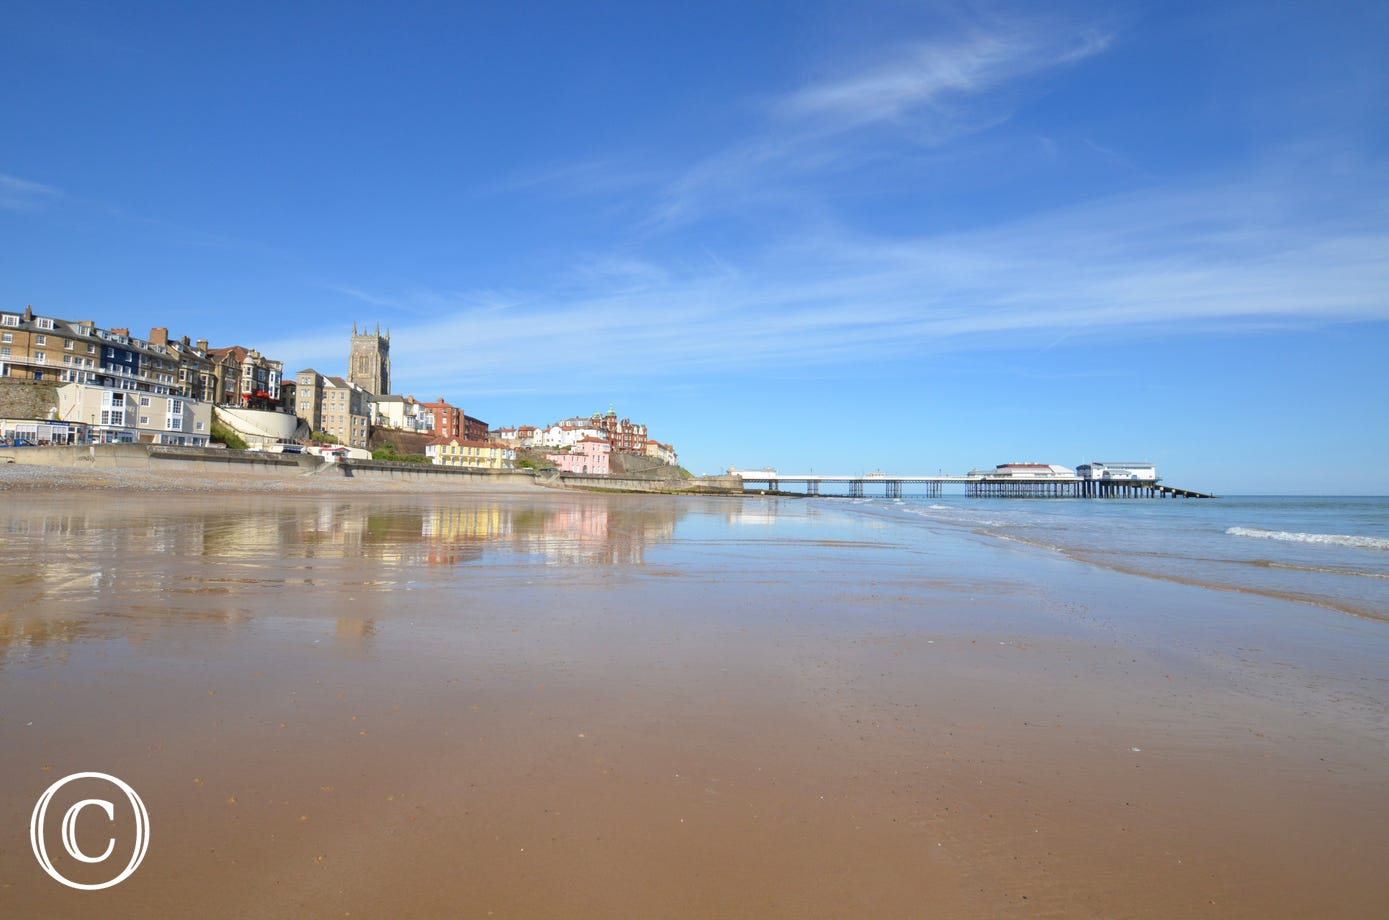 A stunning view of Cromer Beach with the Pier in the distance.